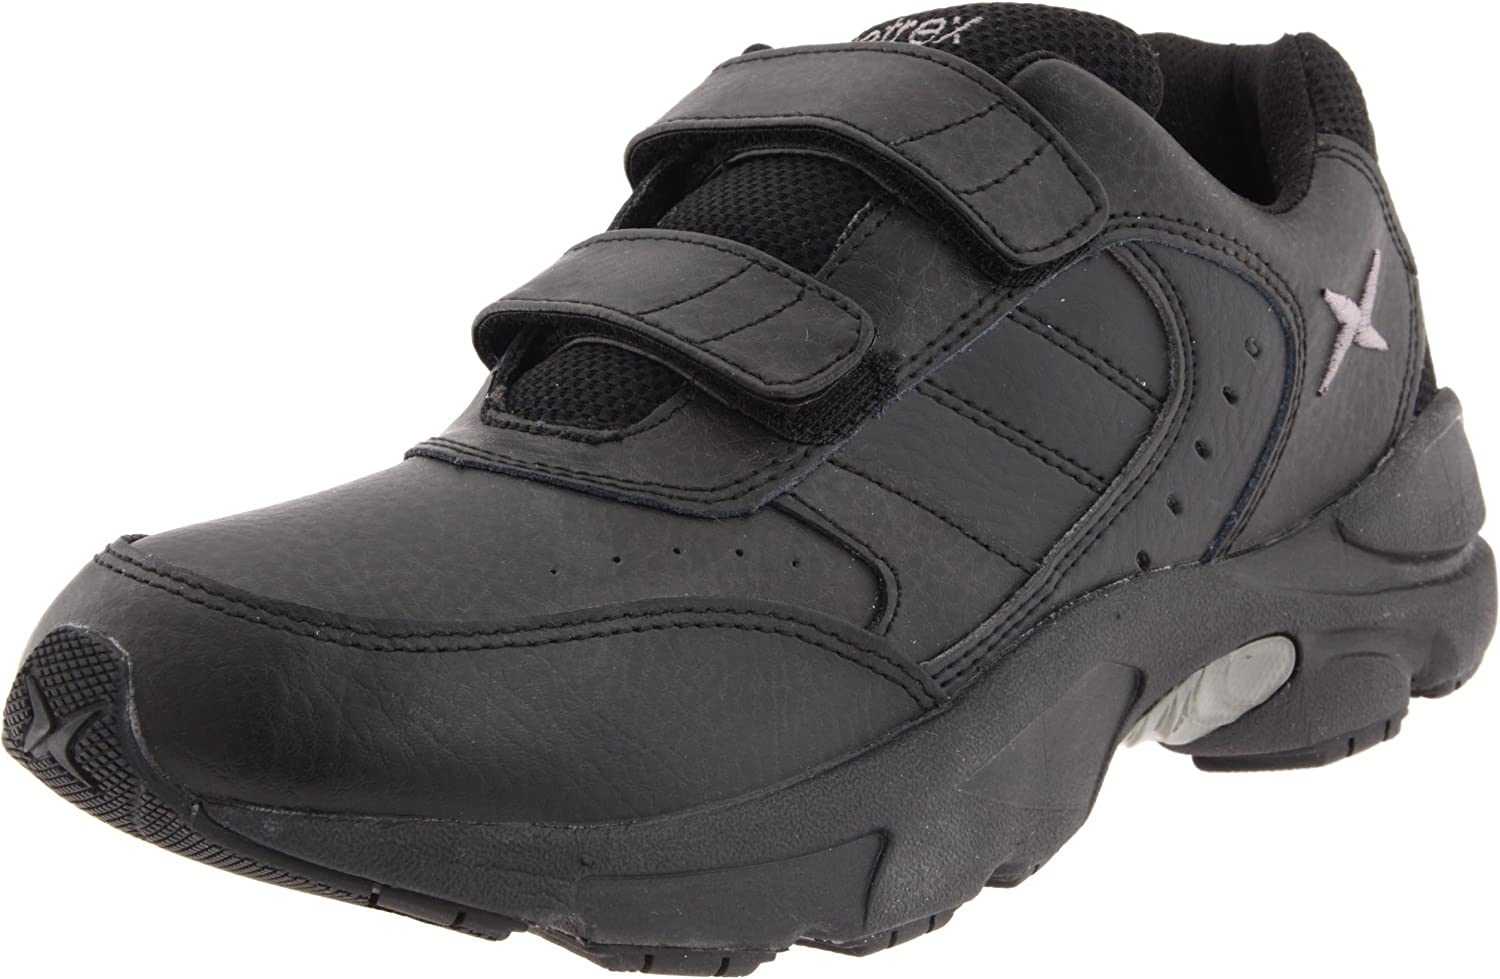 Aetrex Men's Apex Double Strap Walkers